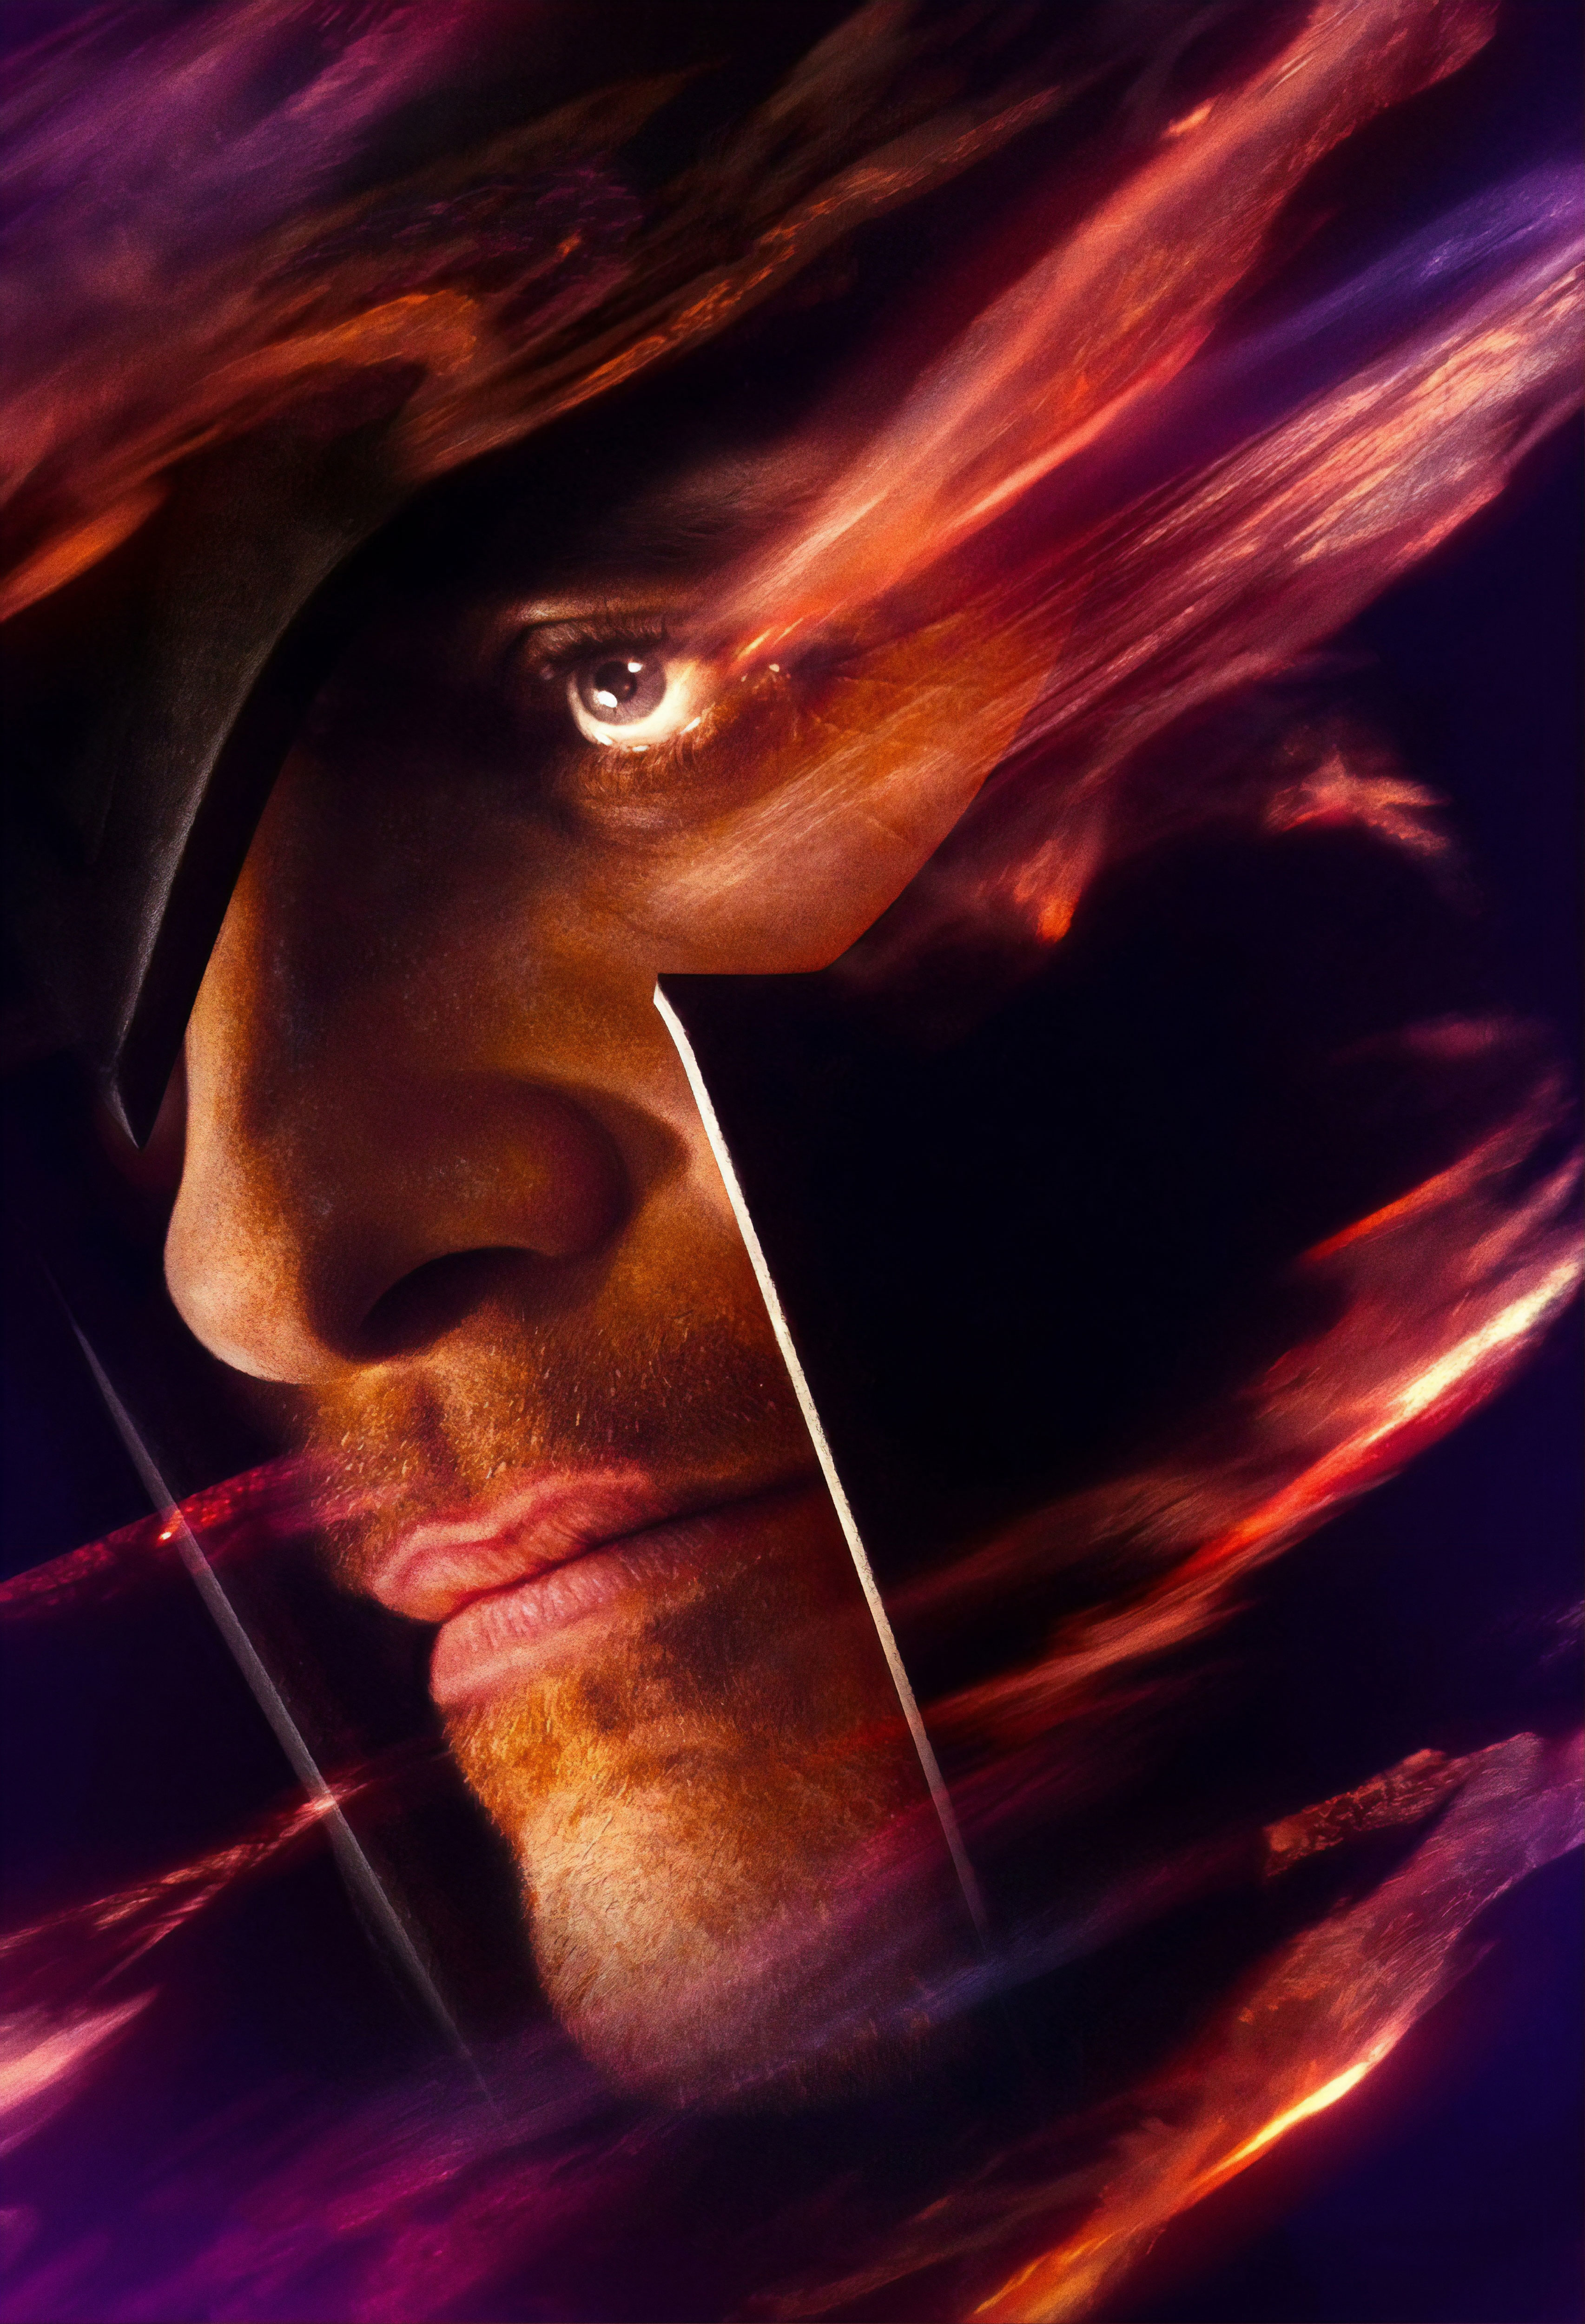 Michael Fassbender As Magneto X Men Dark Phoenix Poster Wallpaper Hd Movies 4k Wallpapers Images Photos And Background